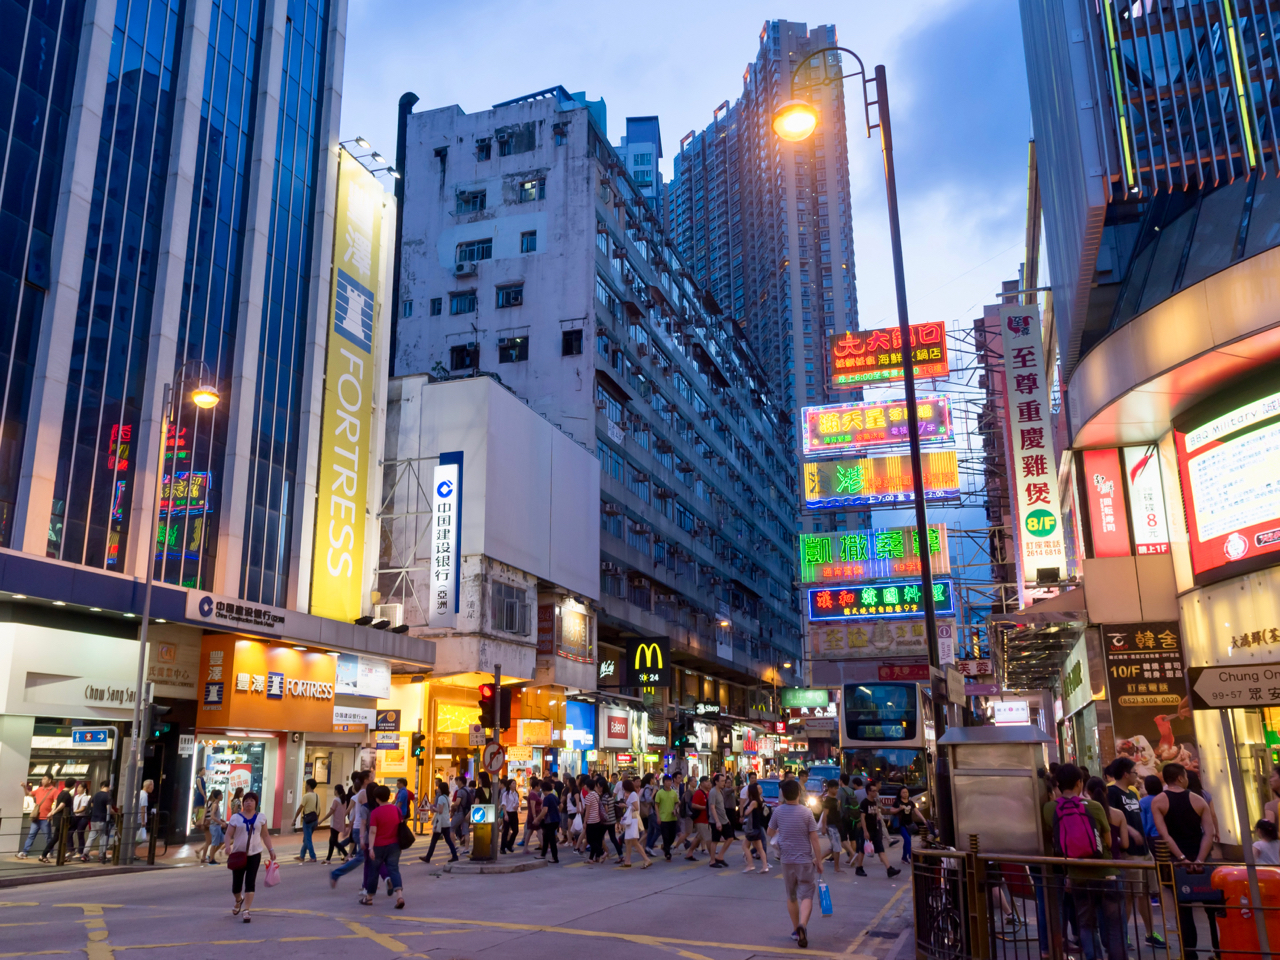 Five awesome things five minutes from Tsuen Wan MTR station